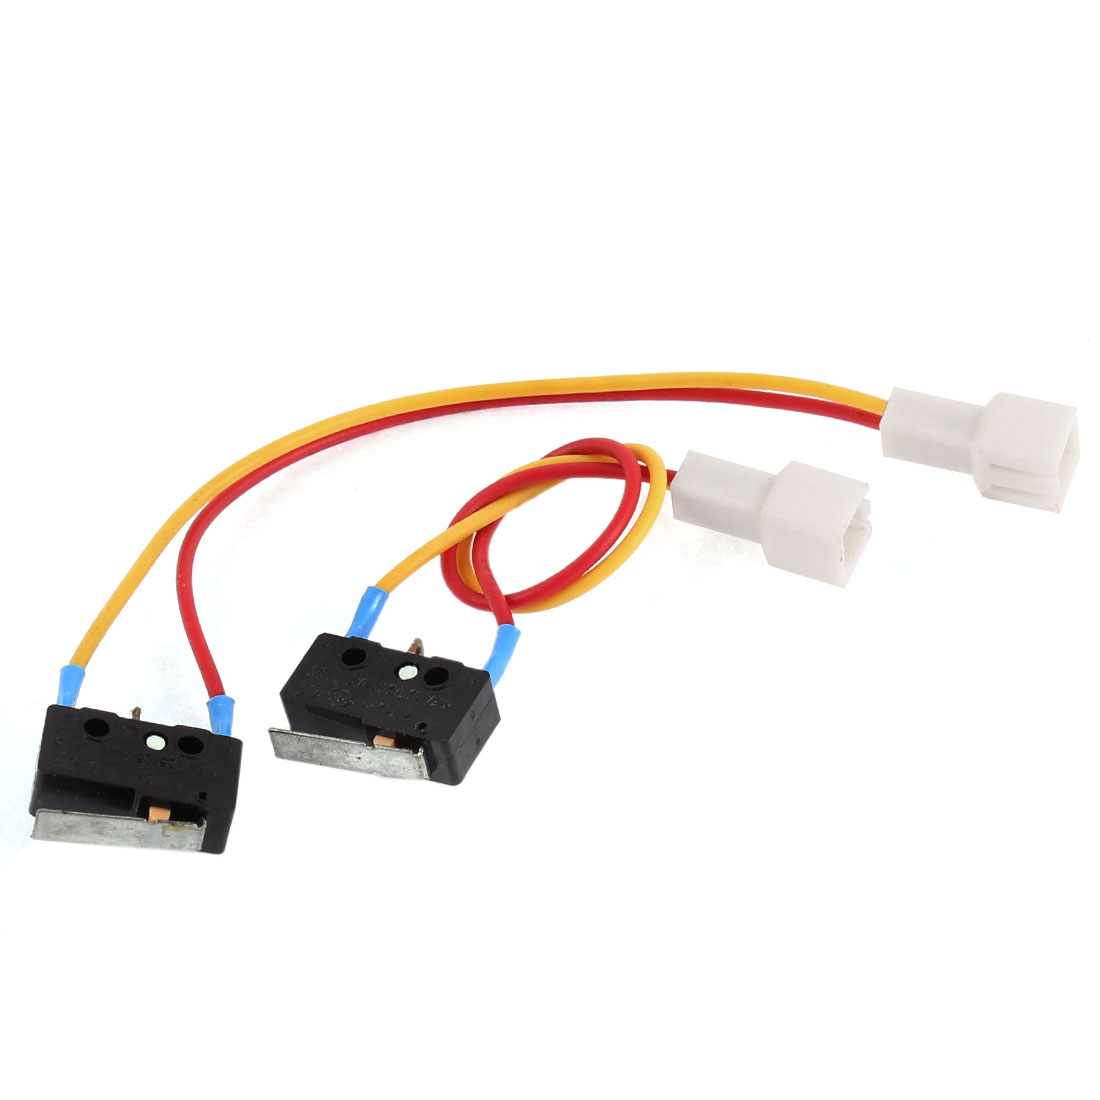 Compare Prices on Stove Ignition Switch- Online Shopping/Buy Low ...